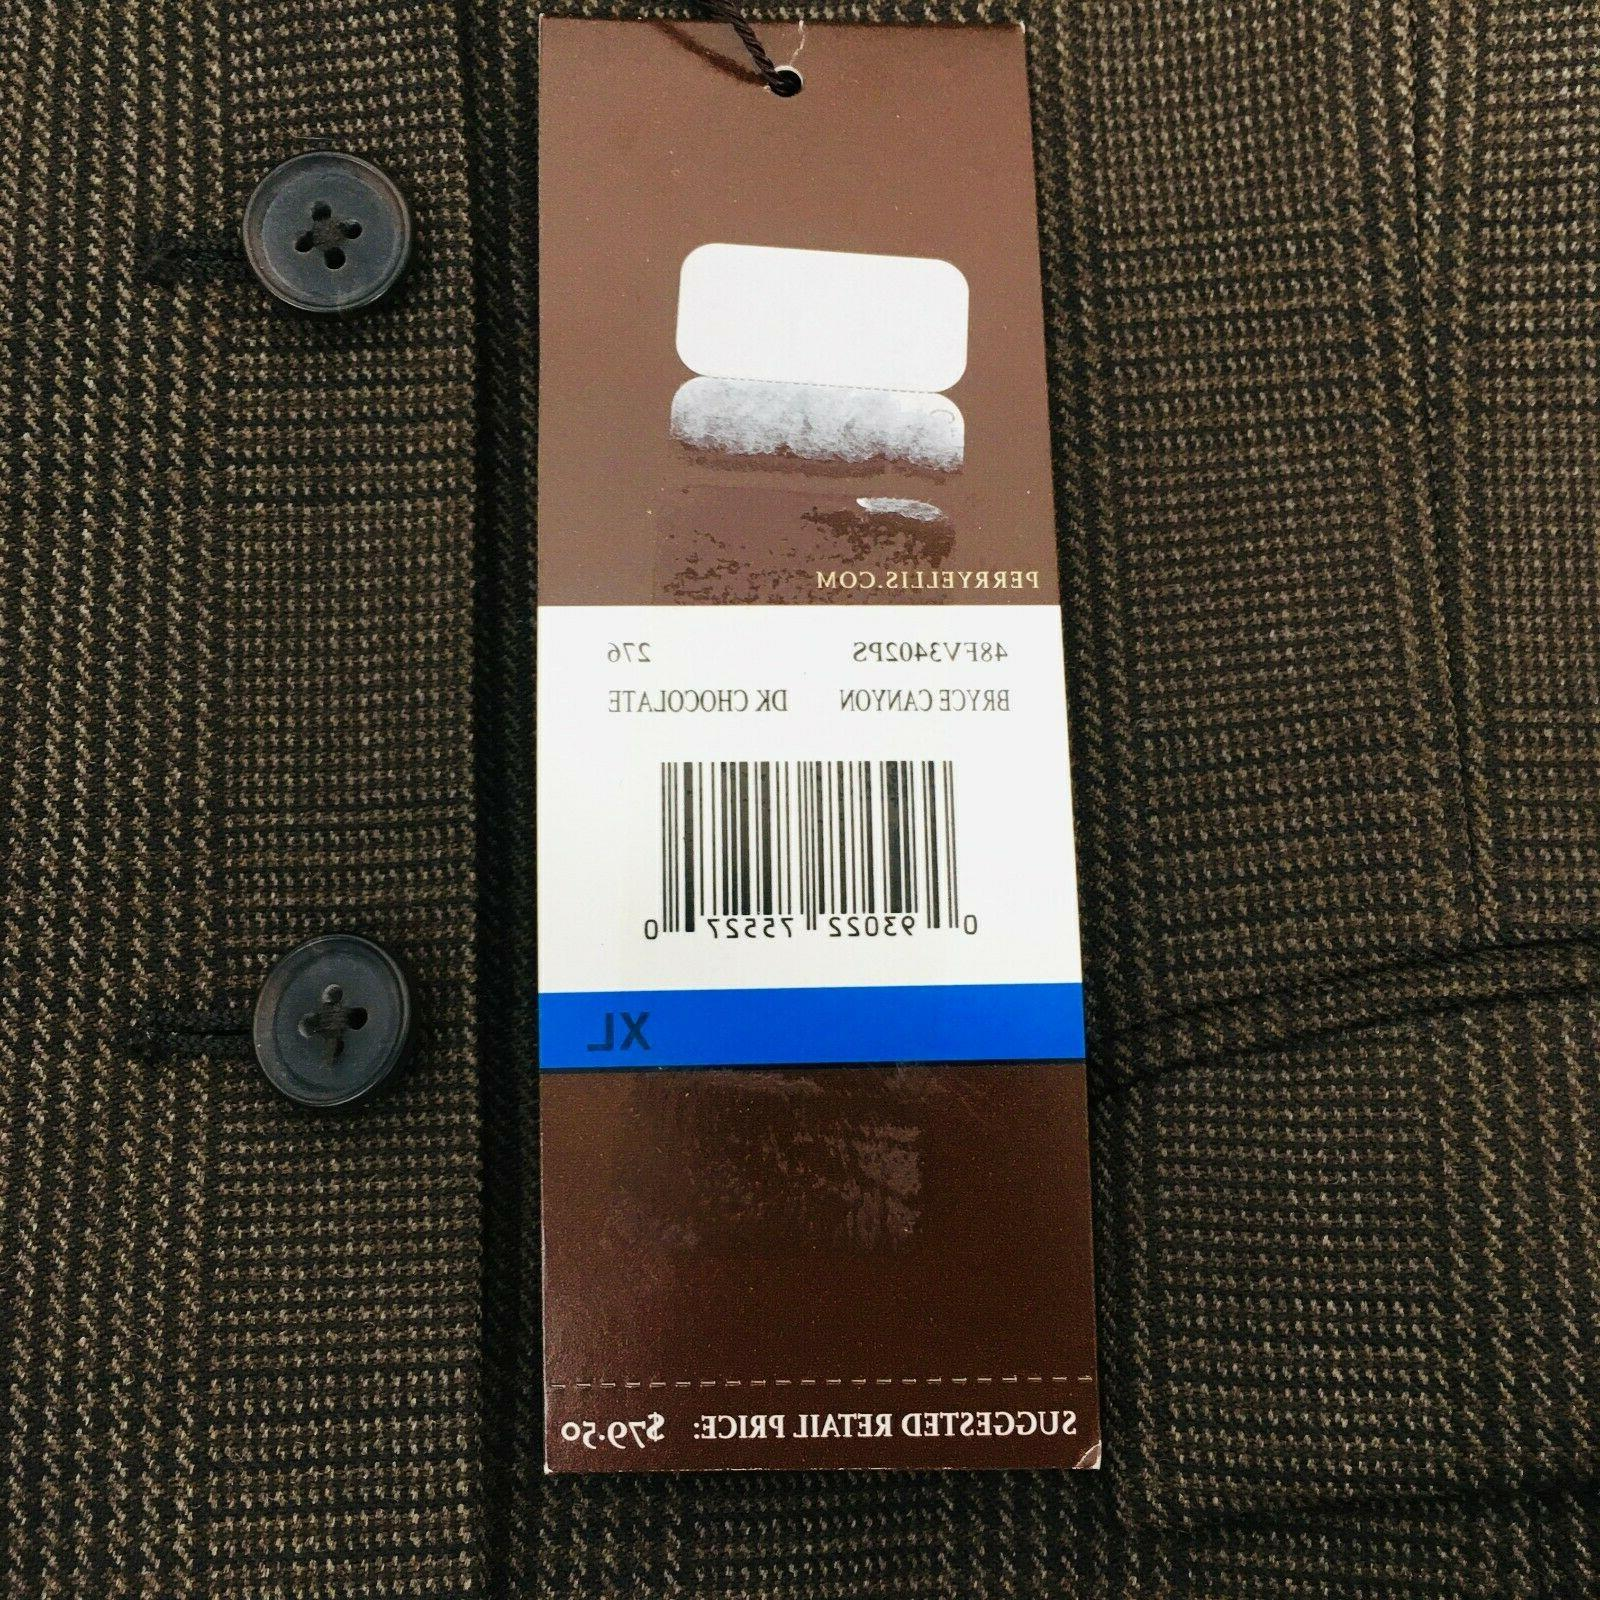 Perry Vest Stripe Dark 5 Button Pocket